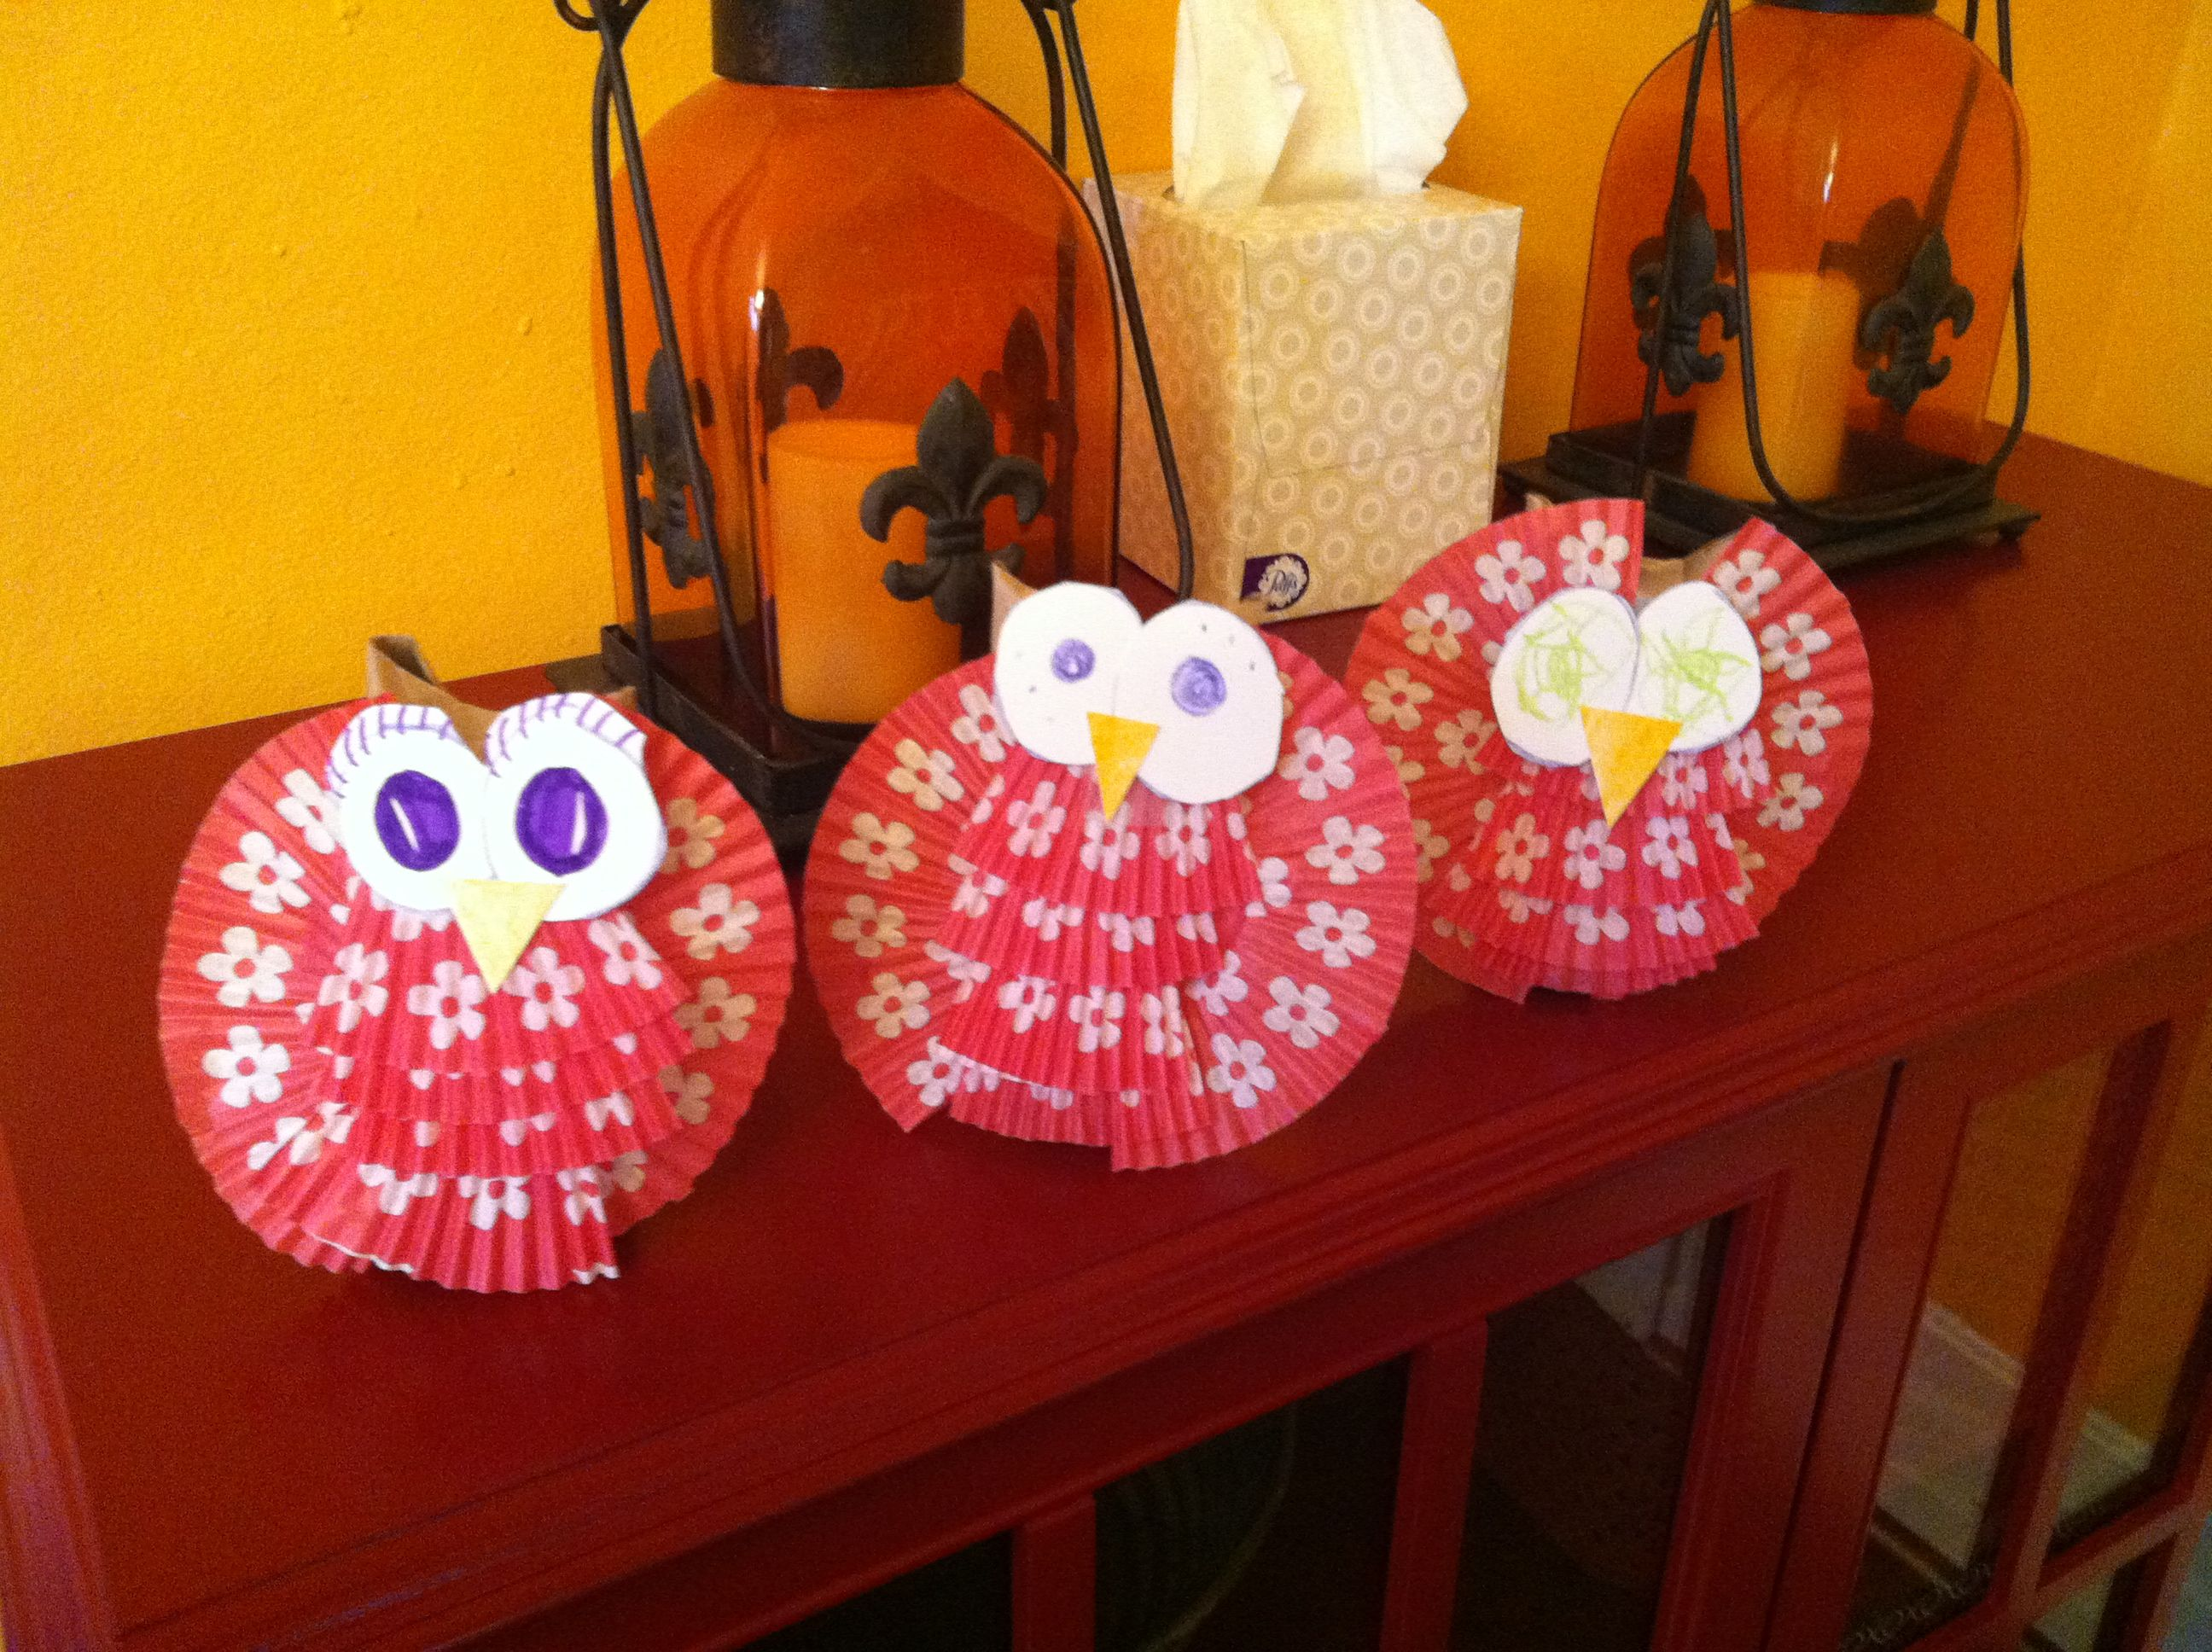 halloween owls toilet paper roll cupcake holders and heavy stock paper with tape family halloween owlhalloween craftsfamily fun magazinecupcake - Family Fun Magazine Halloween Crafts